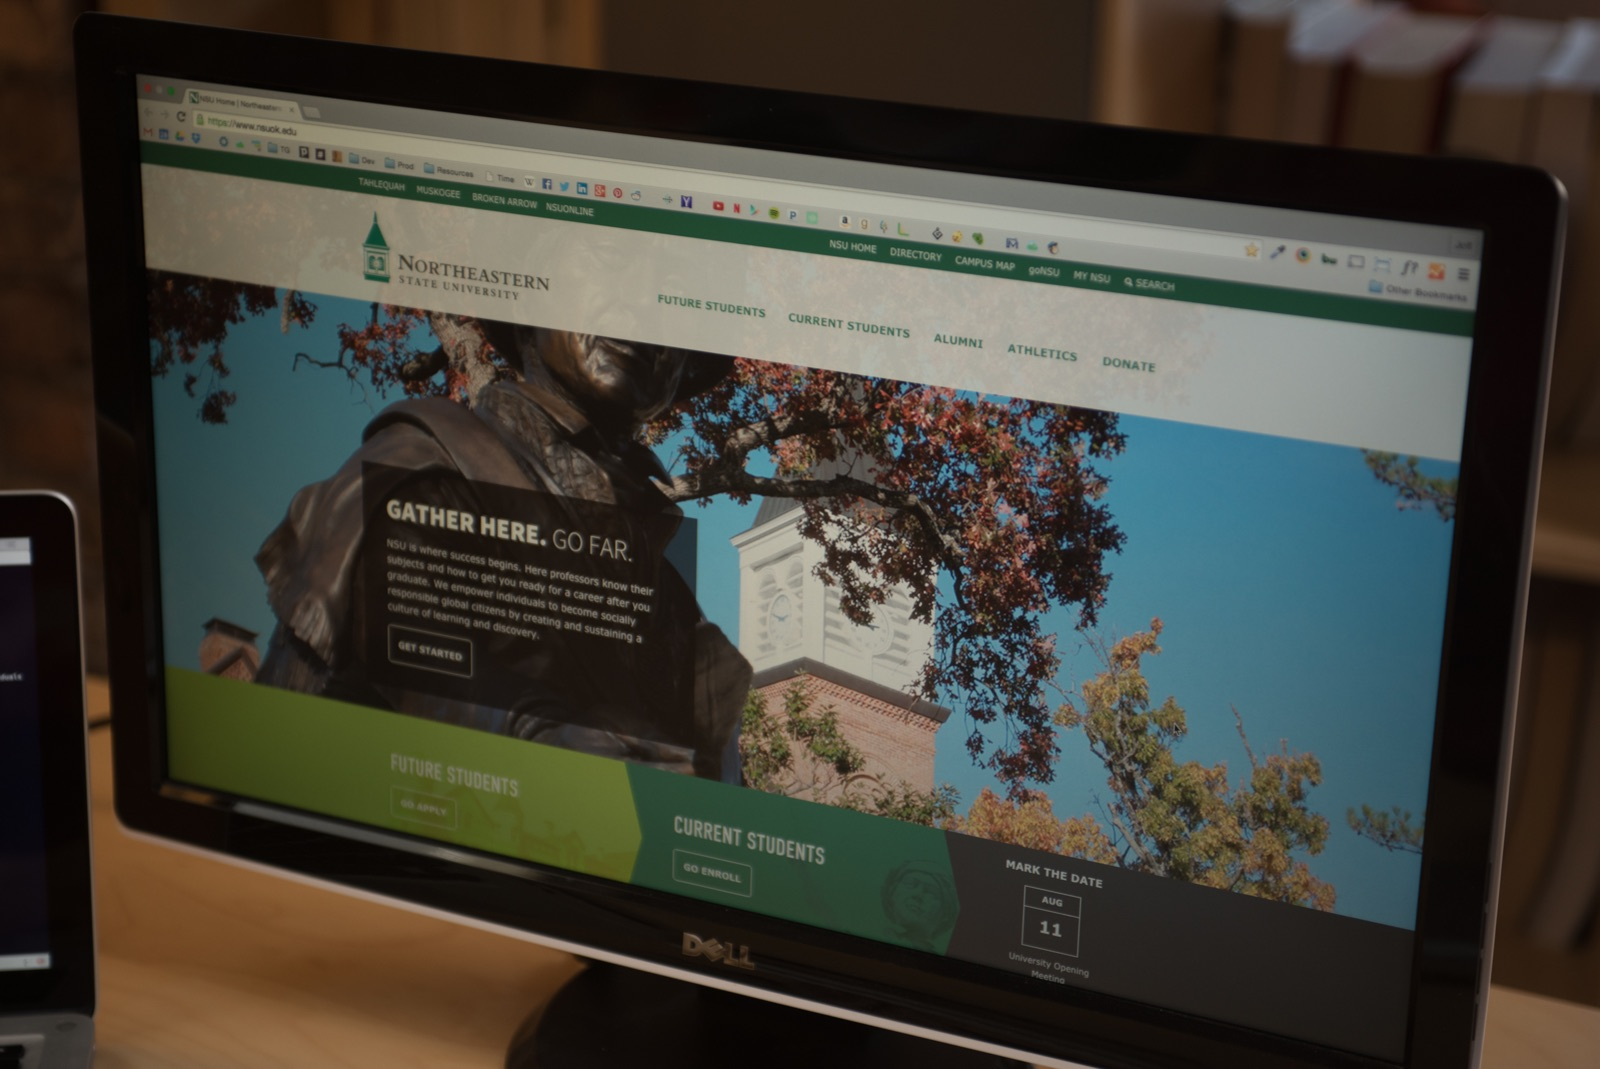 The NSU website viewed on a desktop